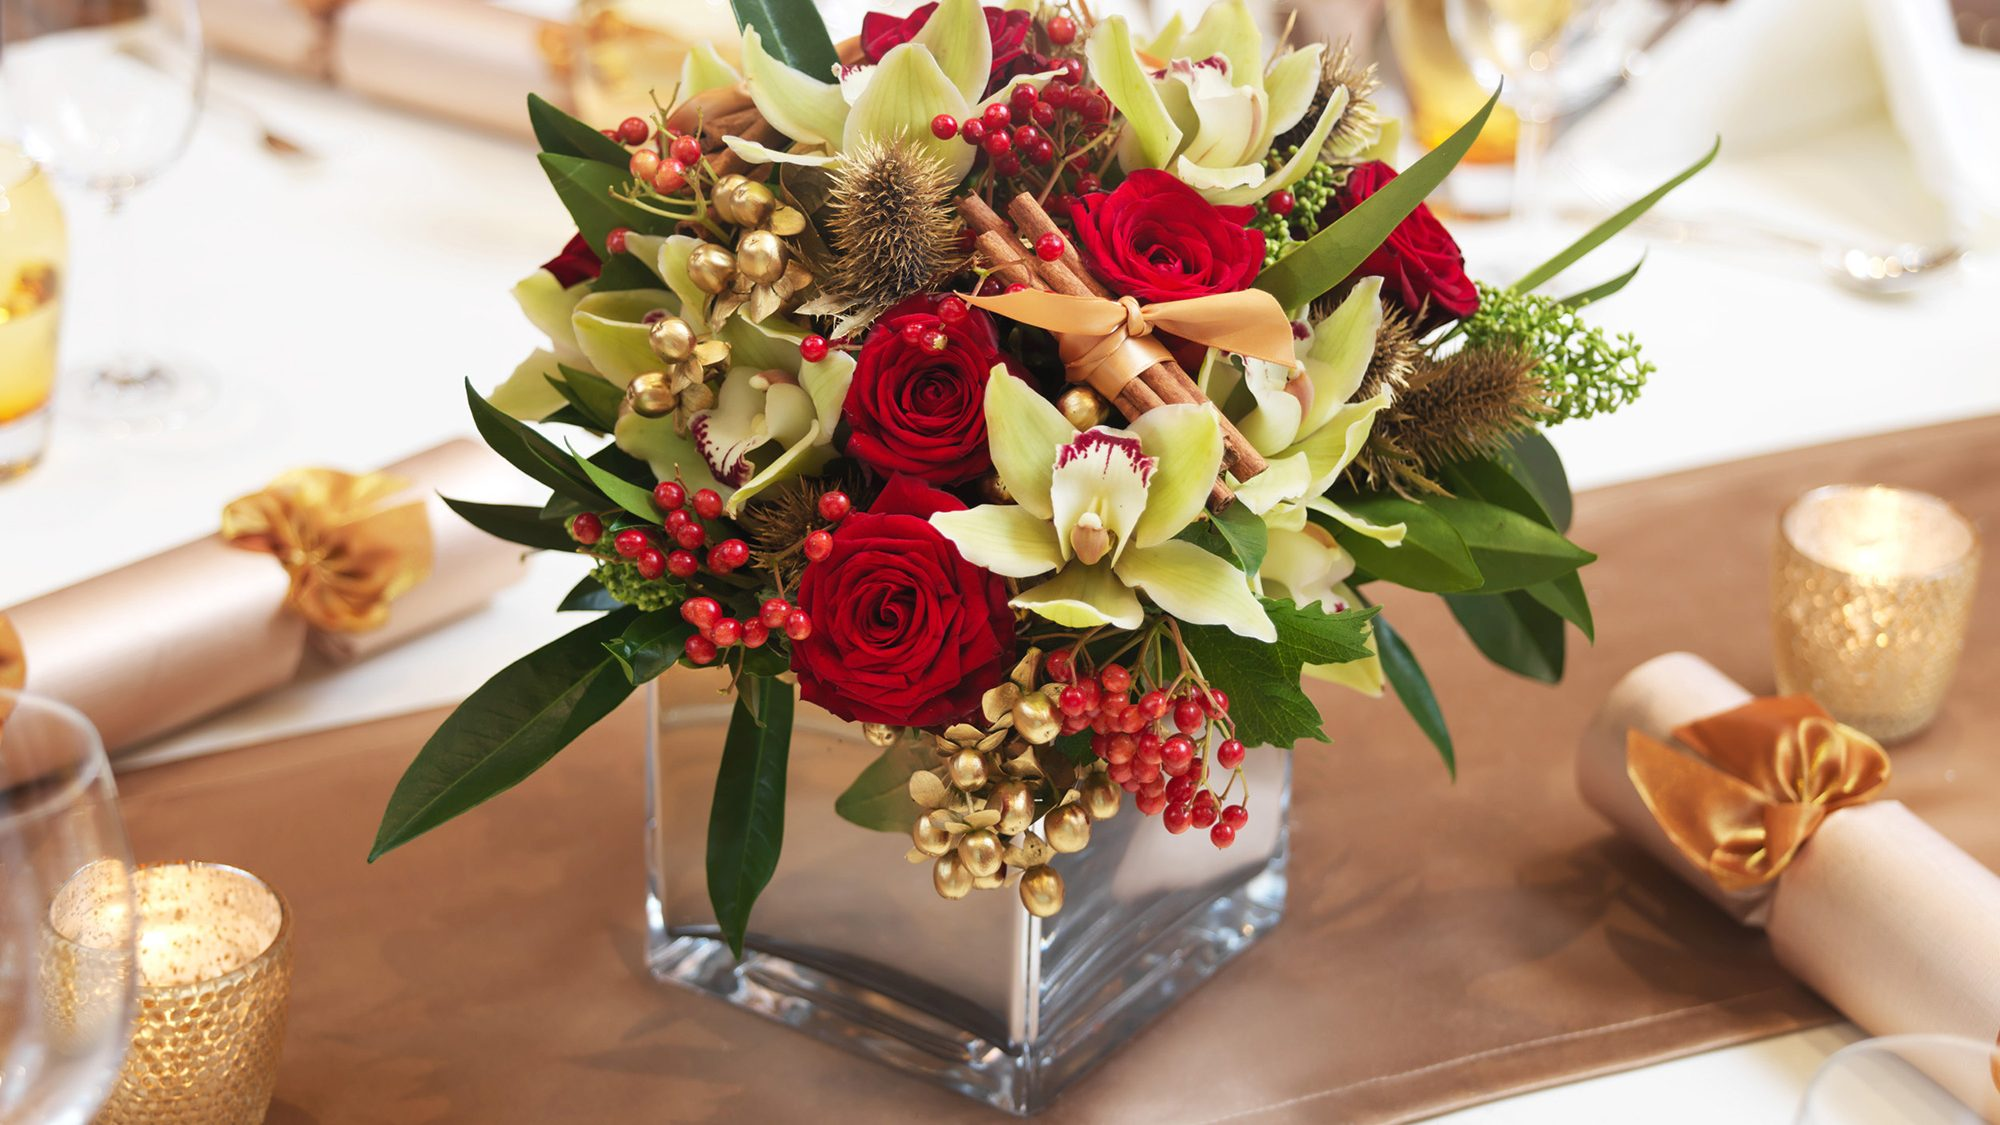 Festive table decoration with flowers